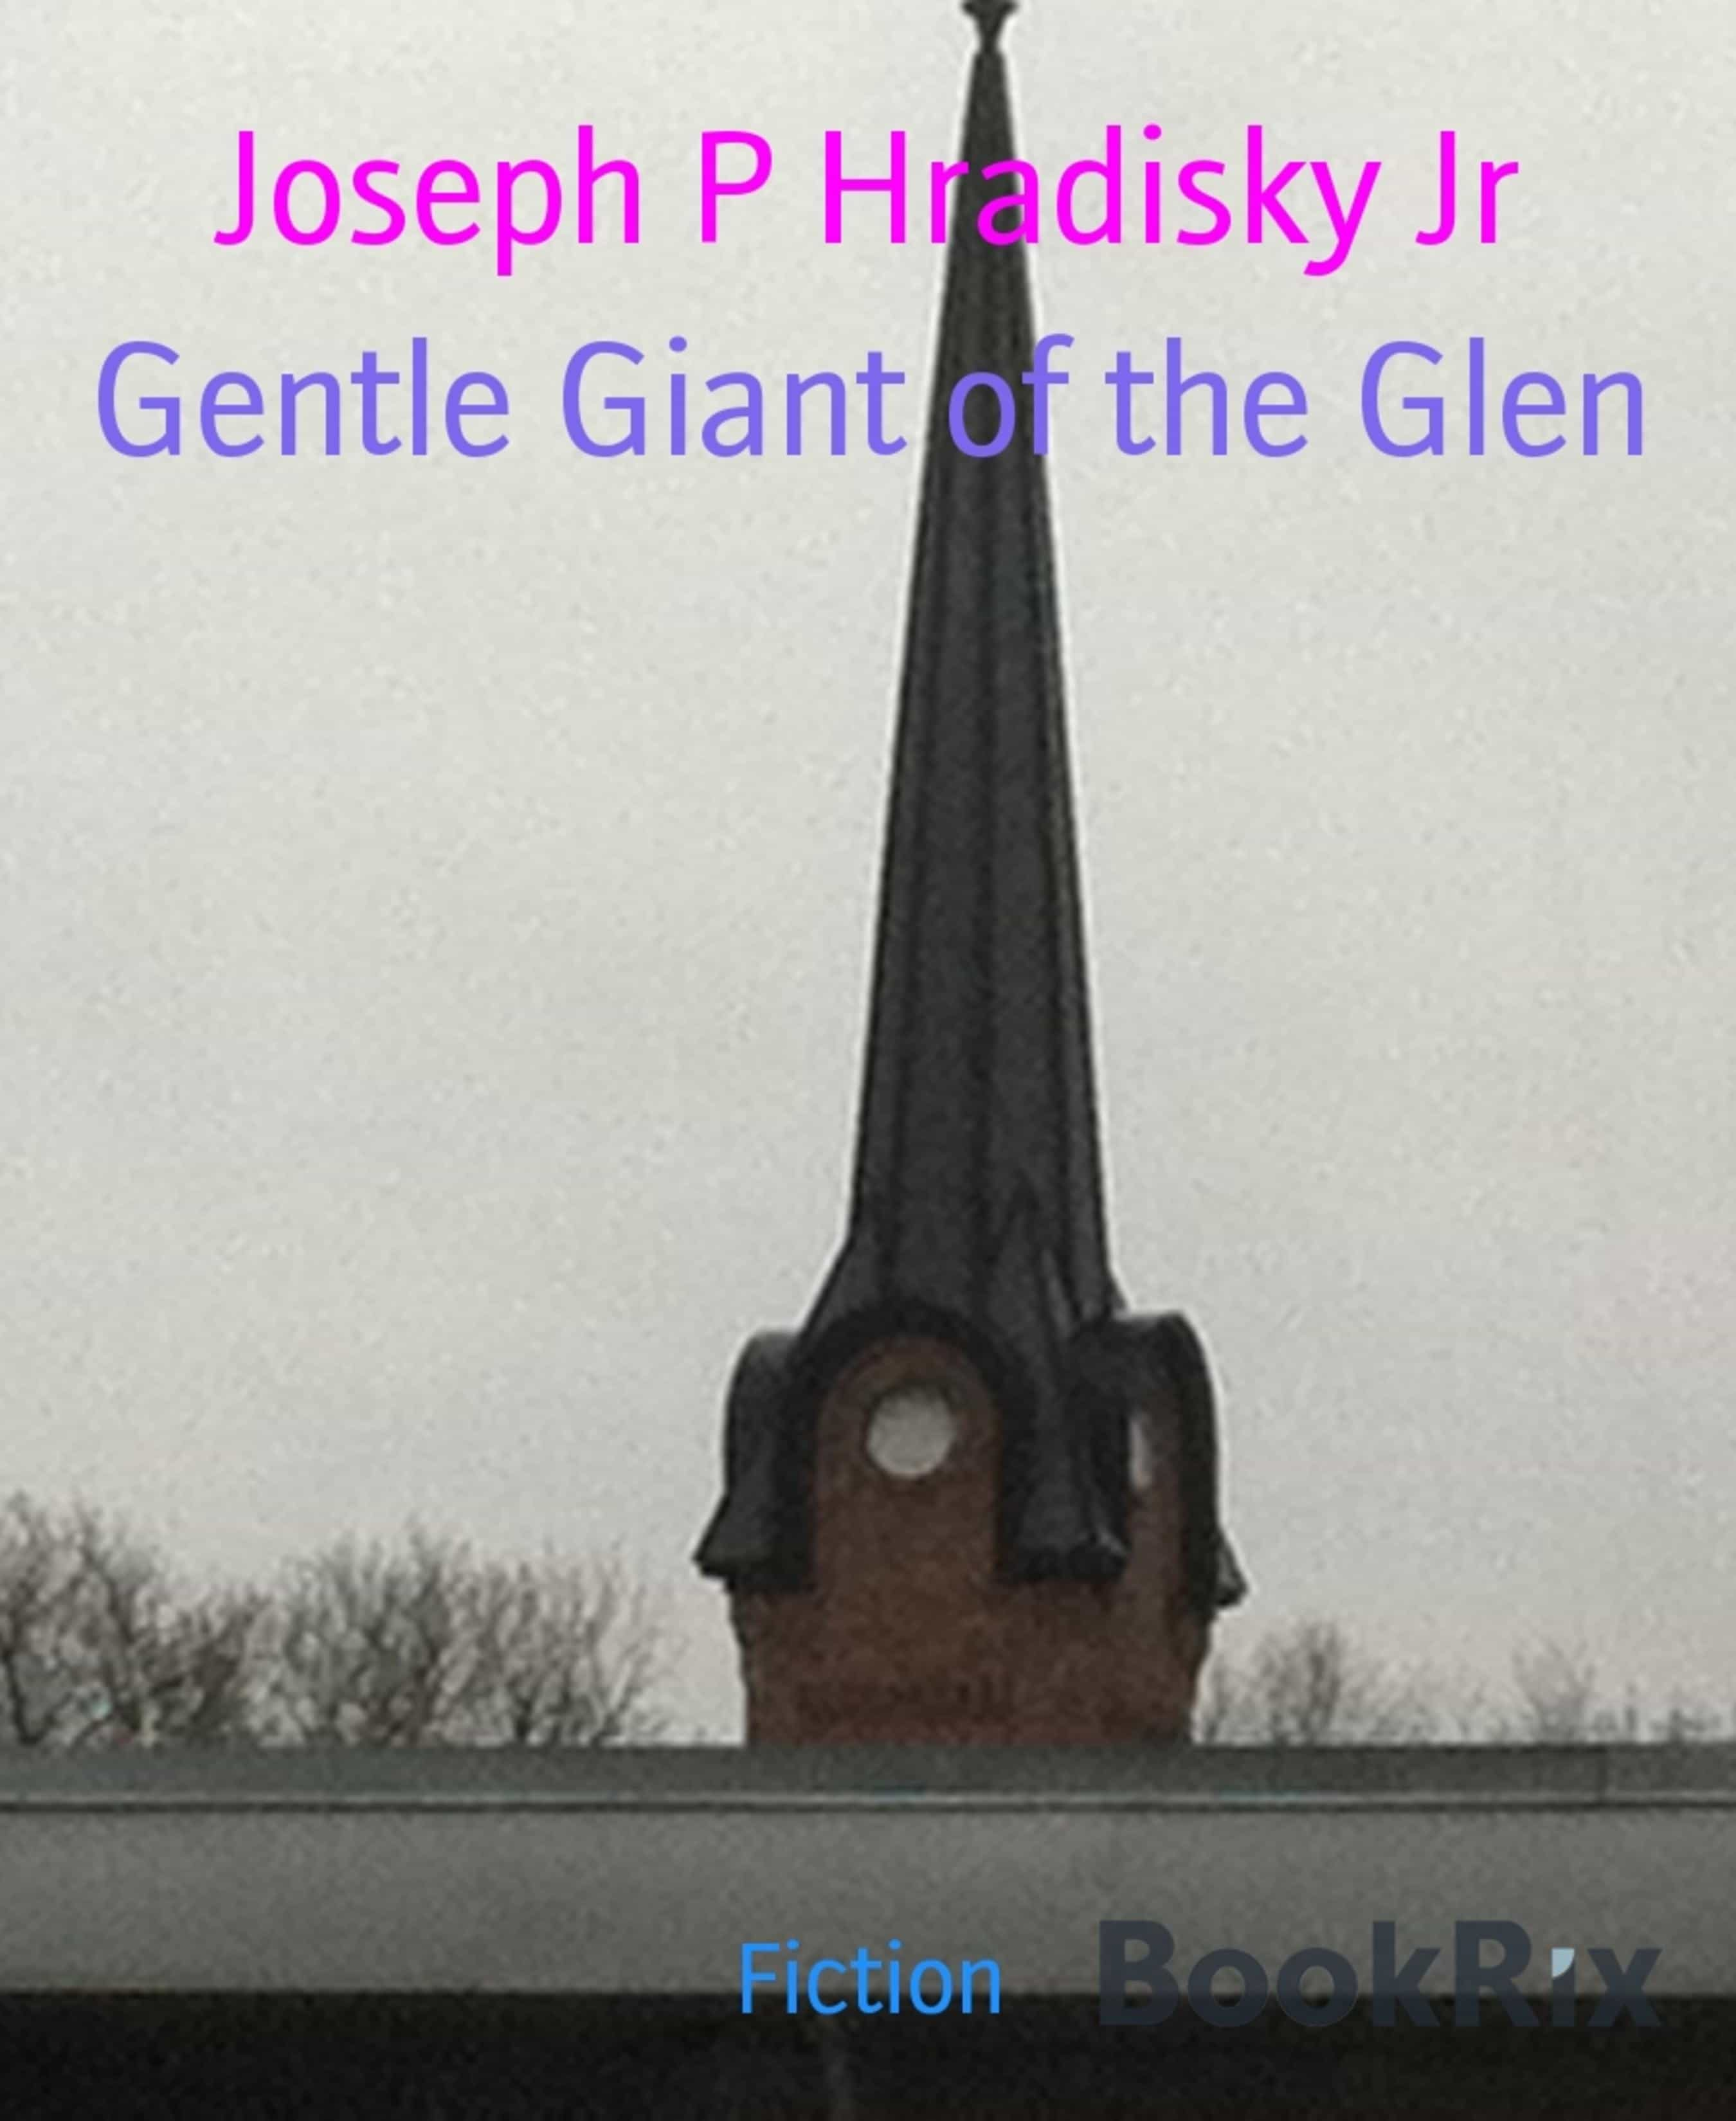 GENTLE GIANT OF THE GLEN